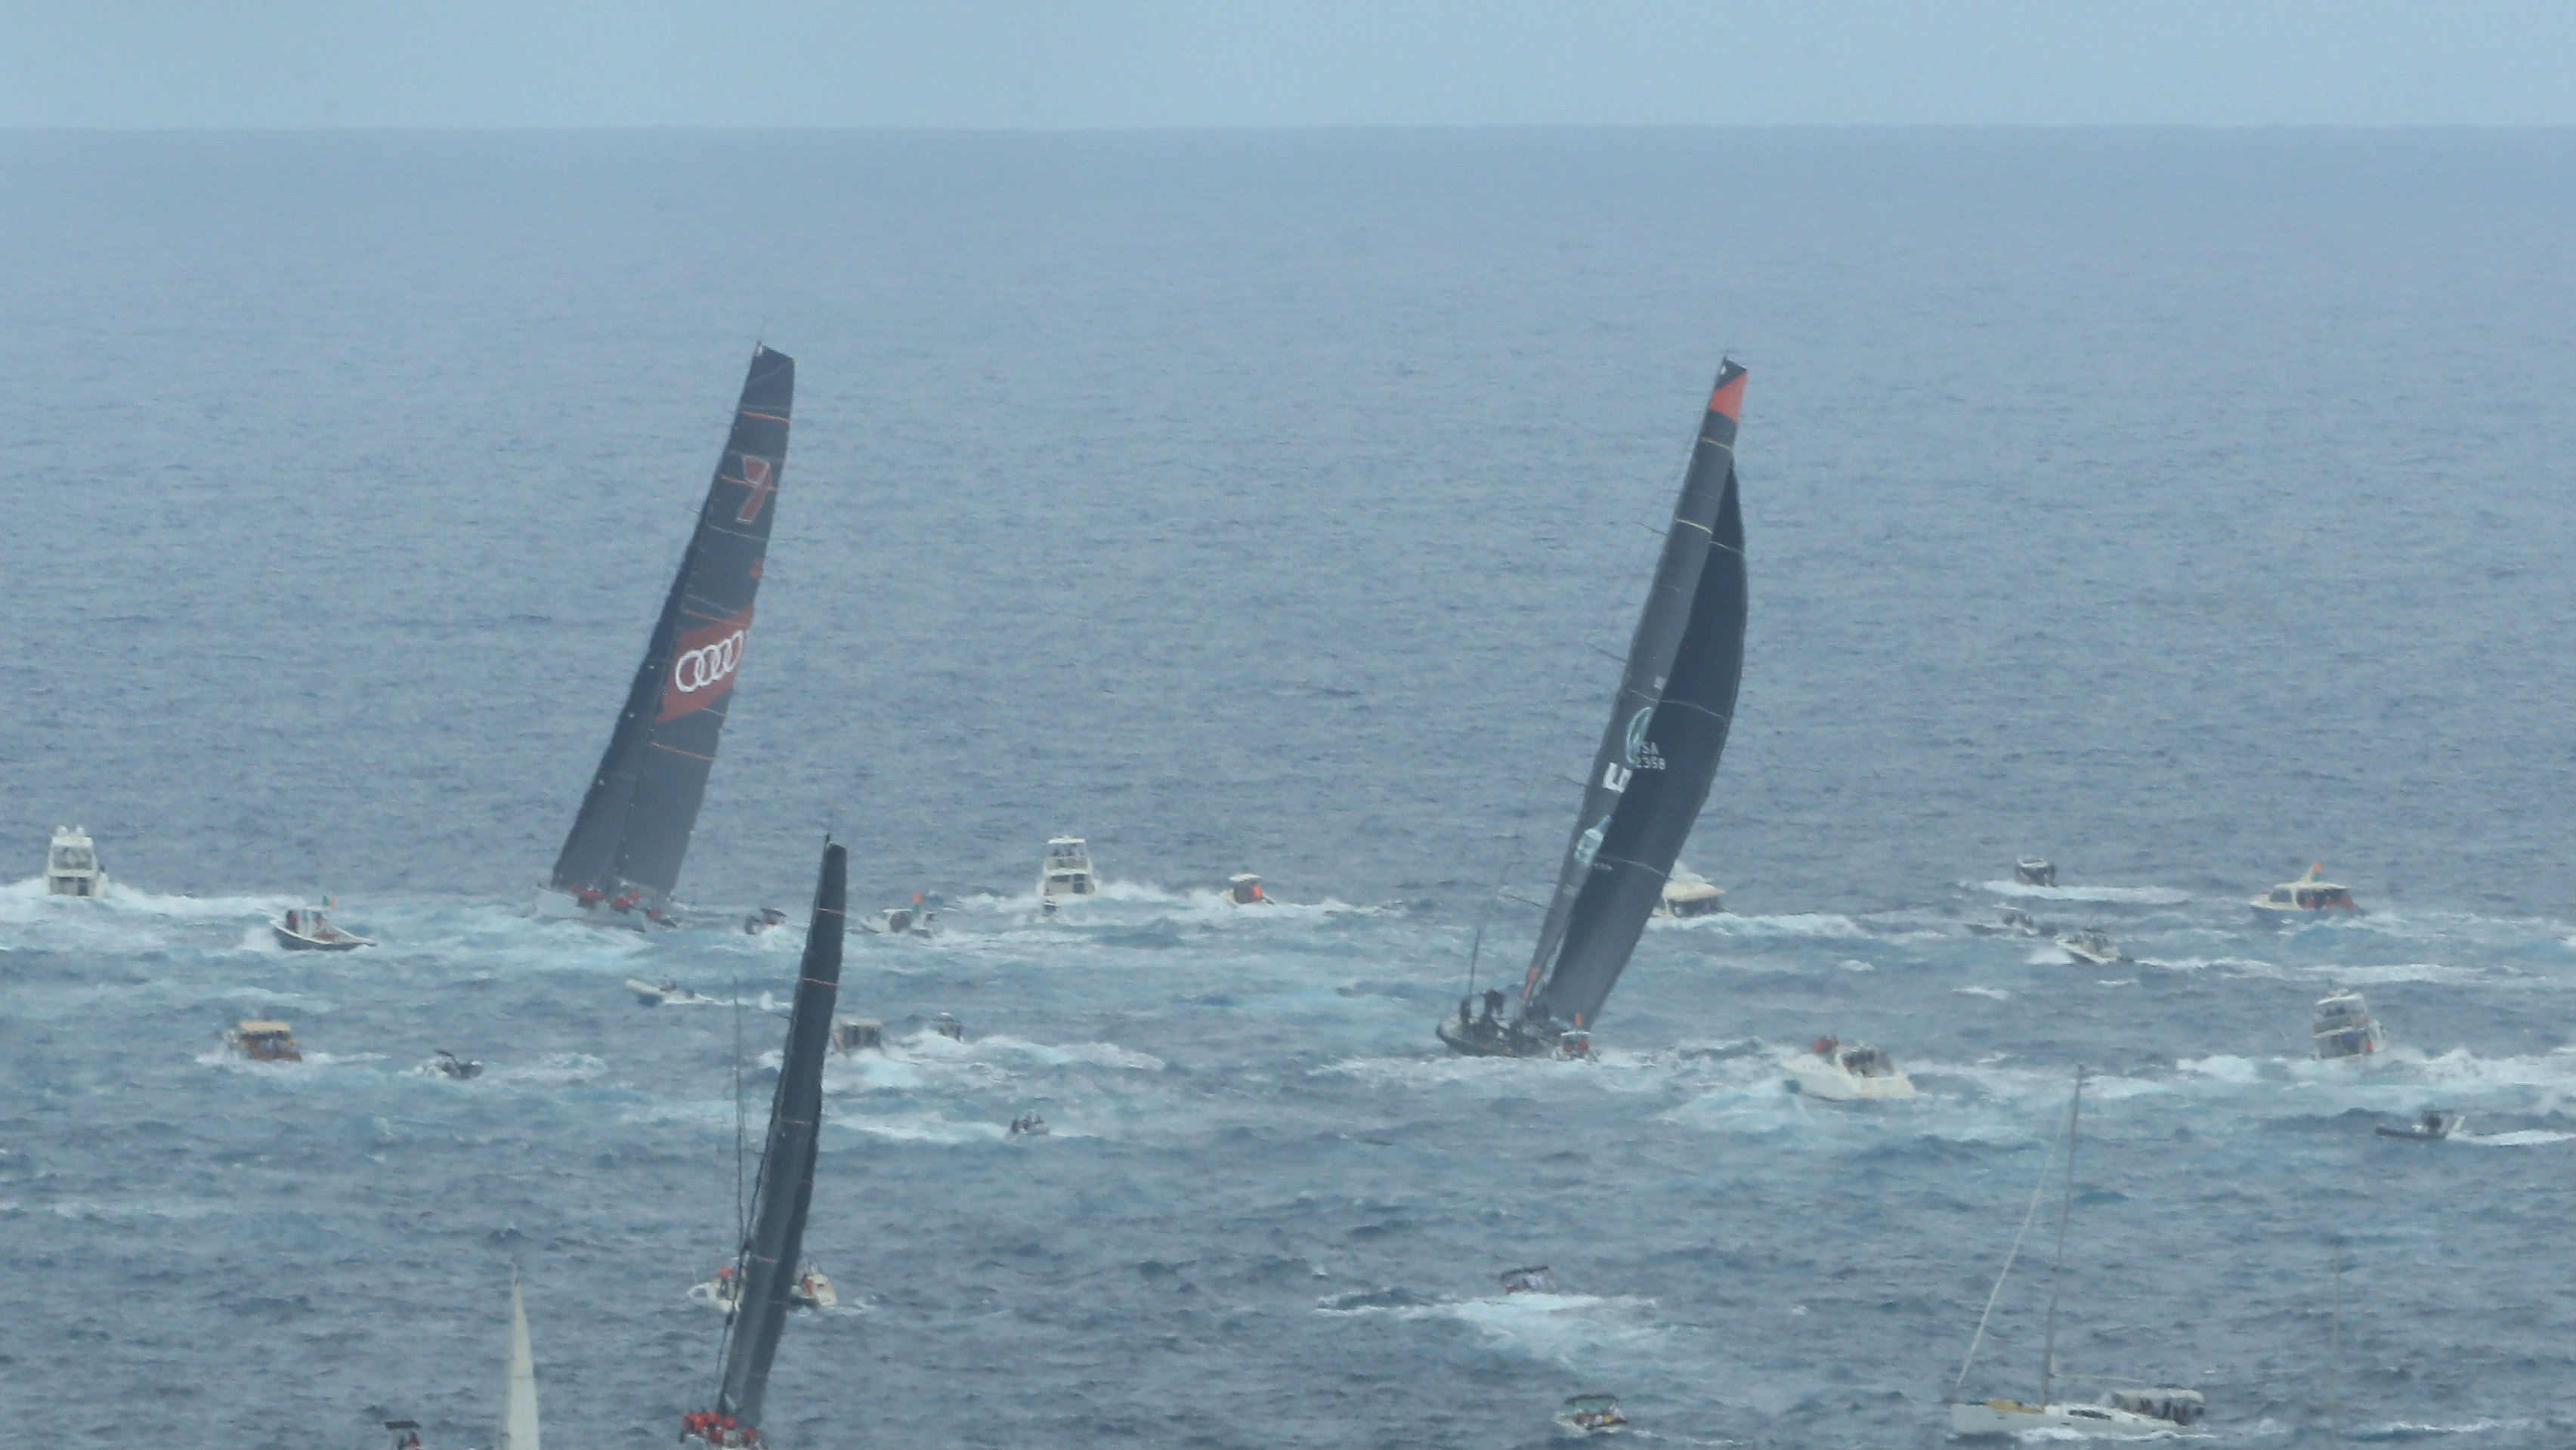 Wild Oats sets race record in Sydney-Hobart victory